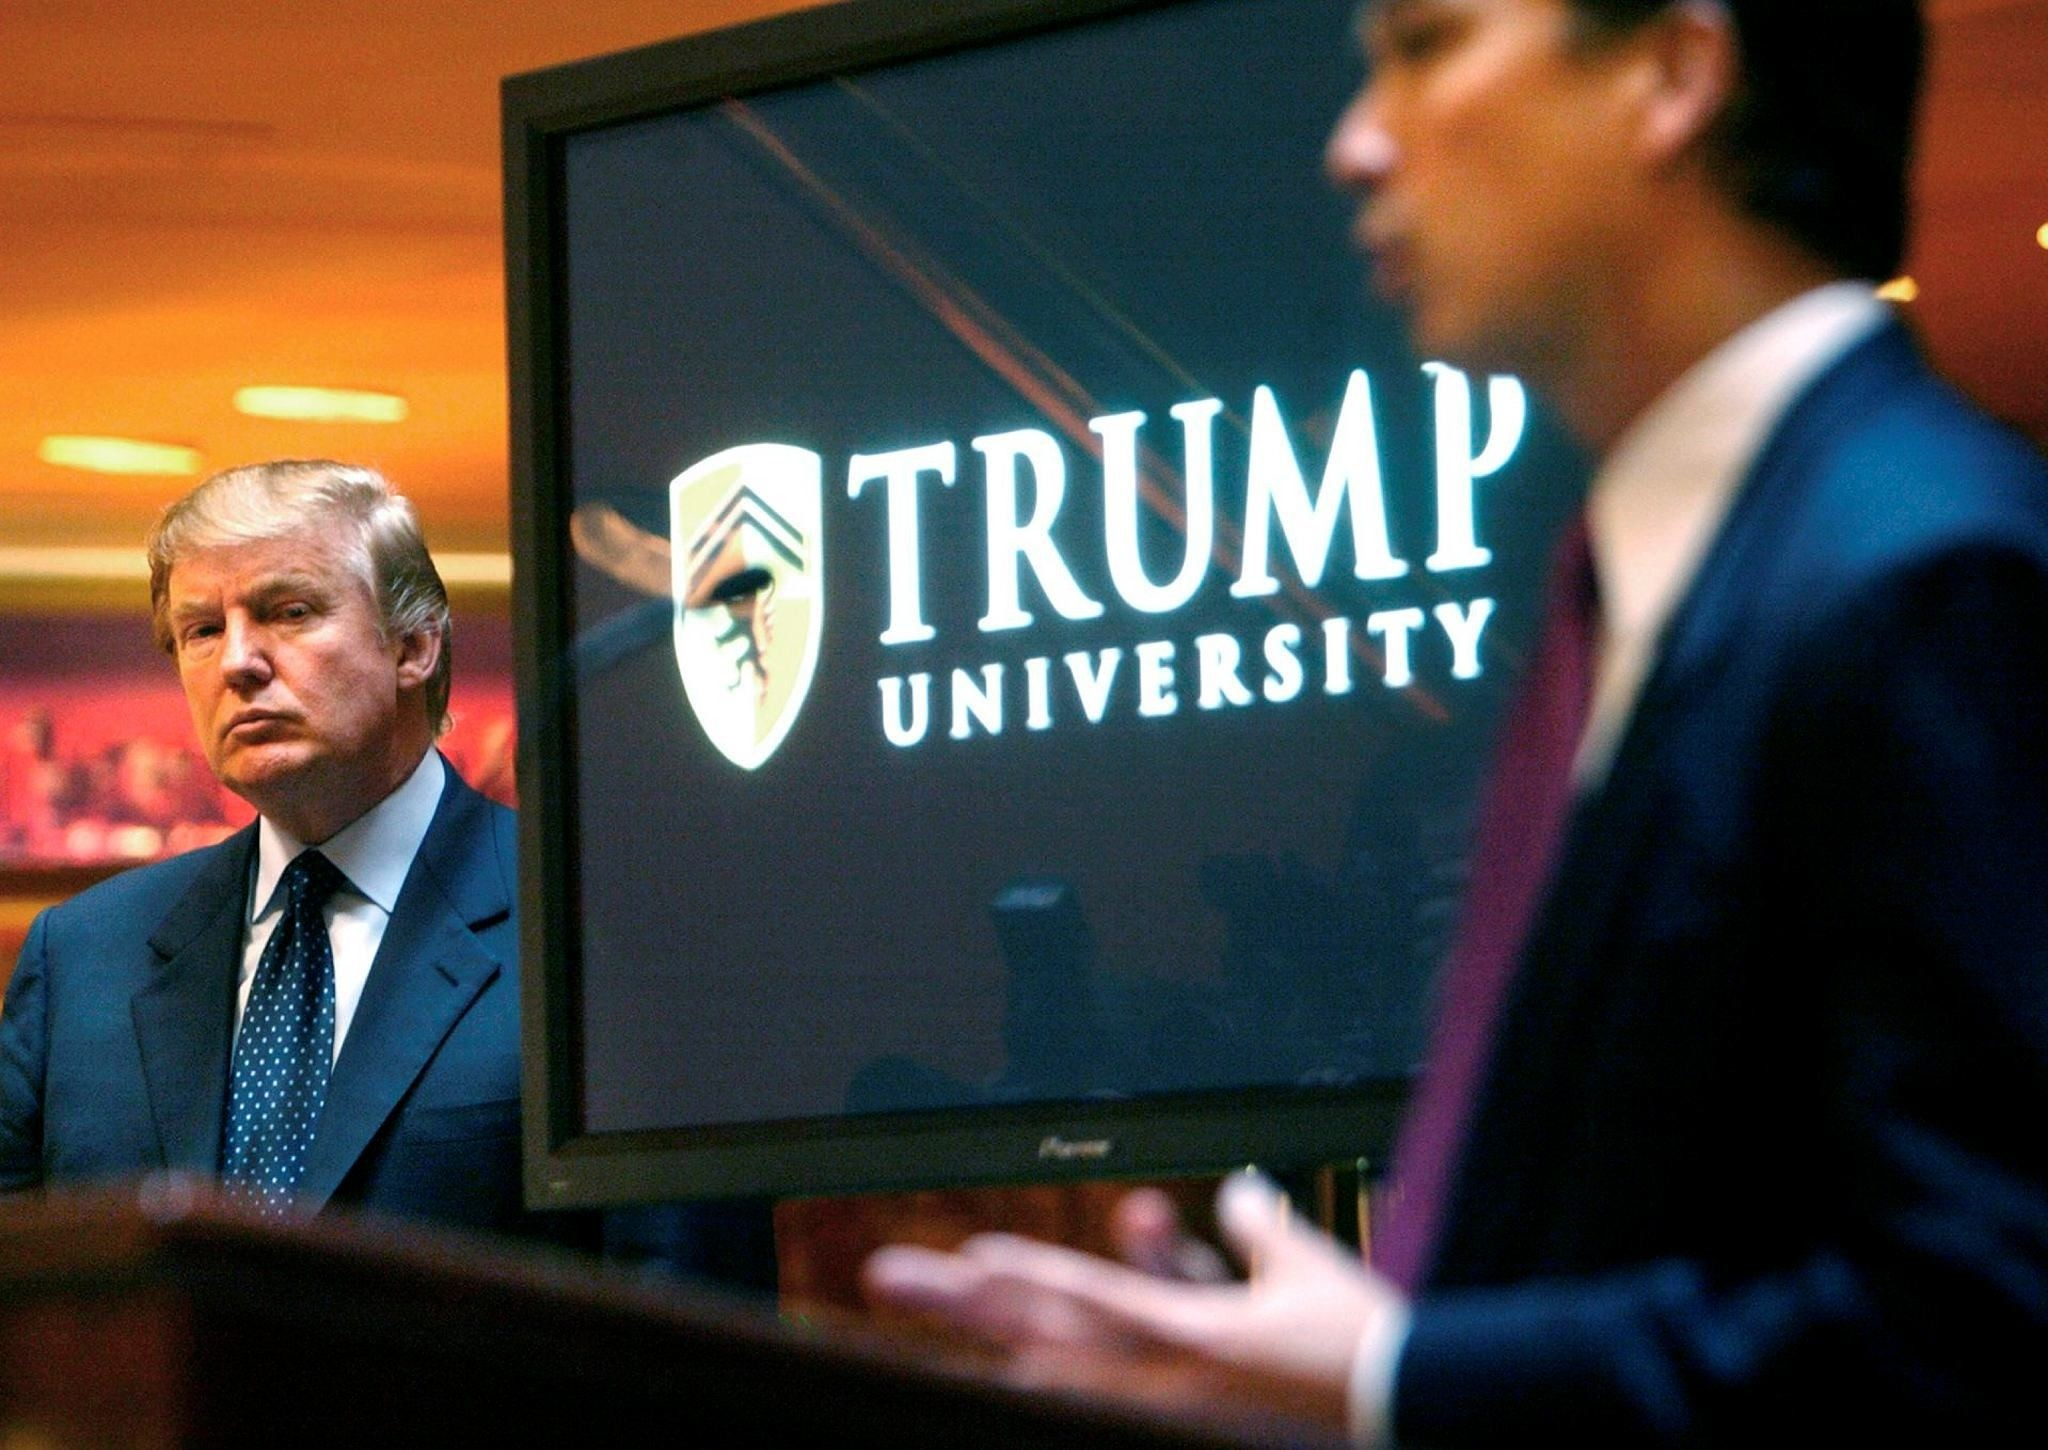 Donald Trump, left, listens as Michael Sexton introduces him at a news conference in New York where he announced the establishment of Trump University. (AP Photo)